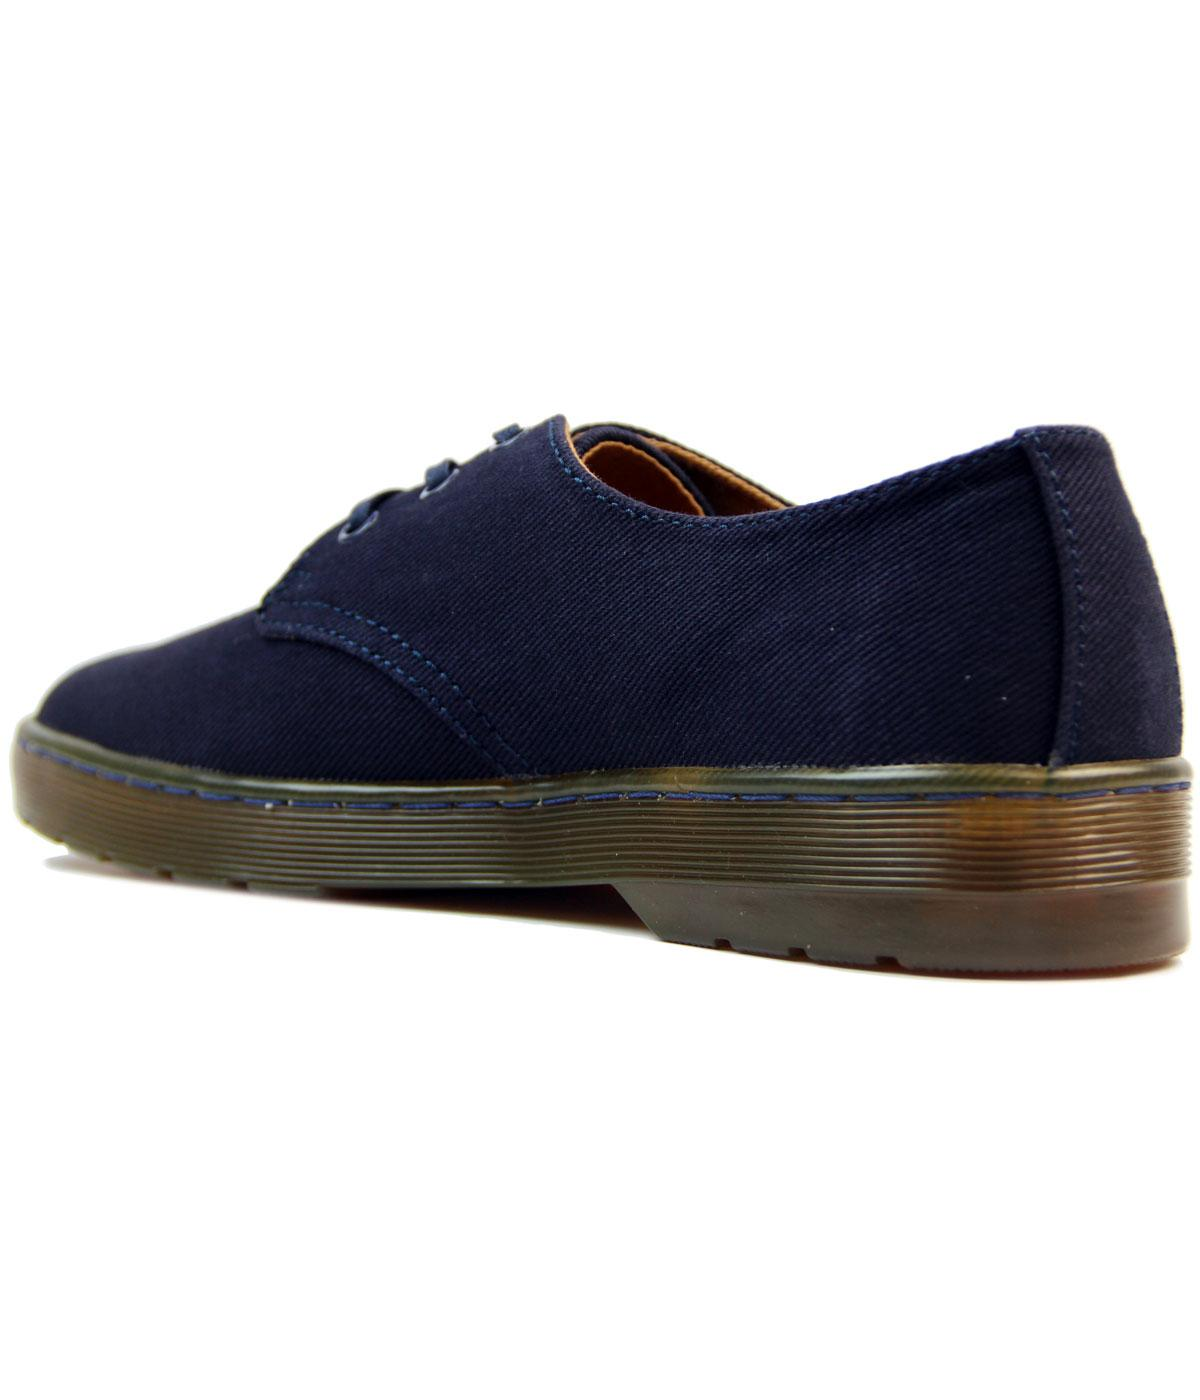 arriving authentic affordable price Cruise Delray DR MARTENS Retro Twill Canvas Shoes